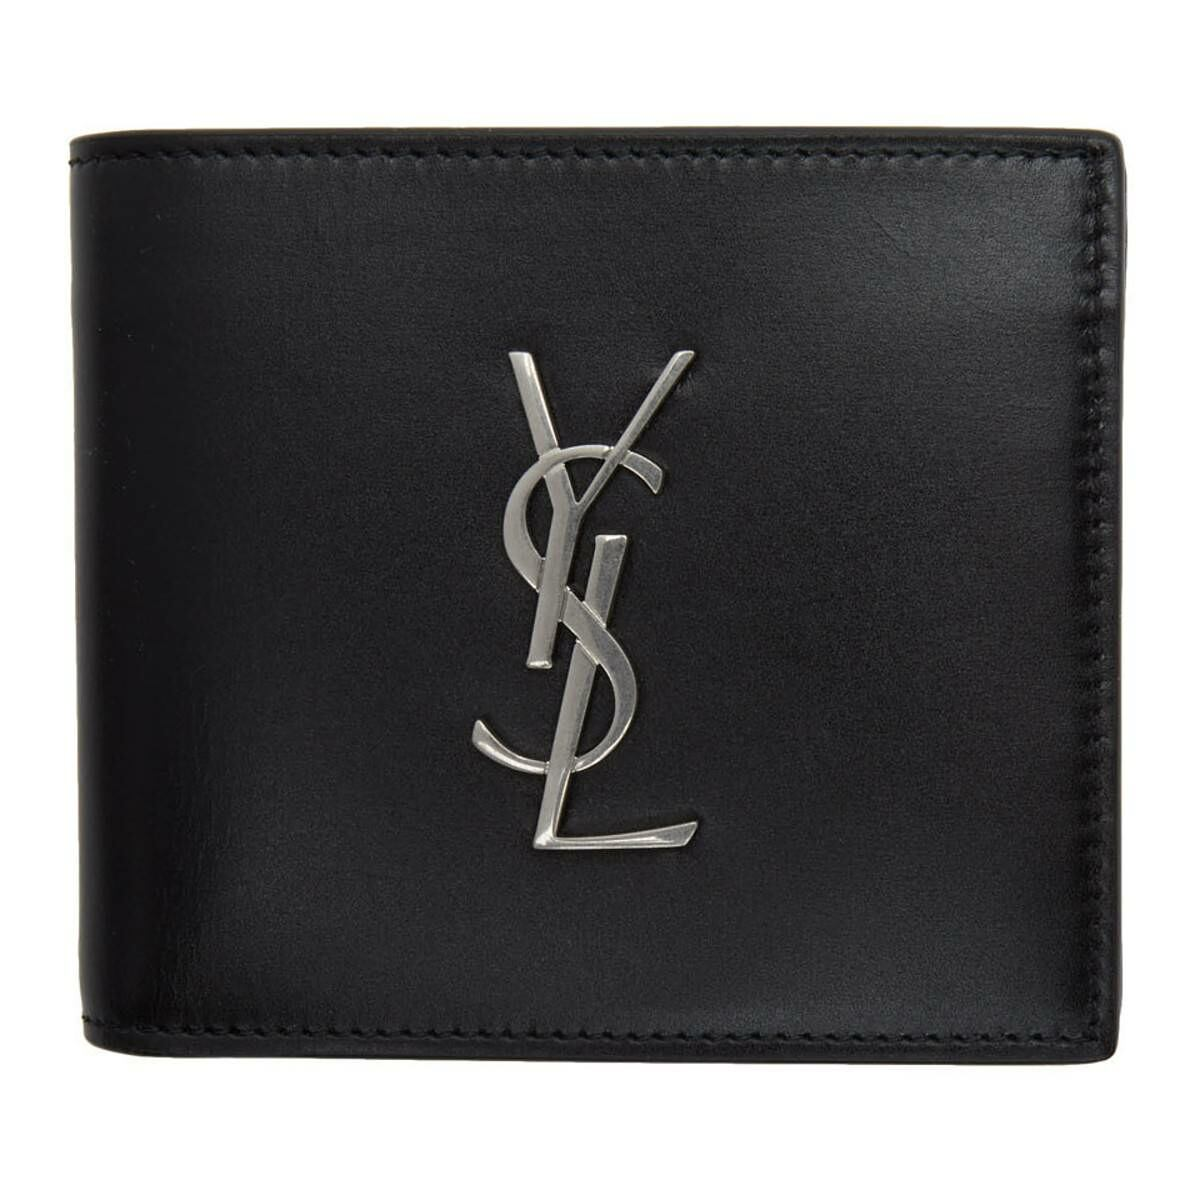 Saint Laurent Black Logo Billfold Wallet Ssense USA MEN Men ACCESSORIES Mens WALLETS